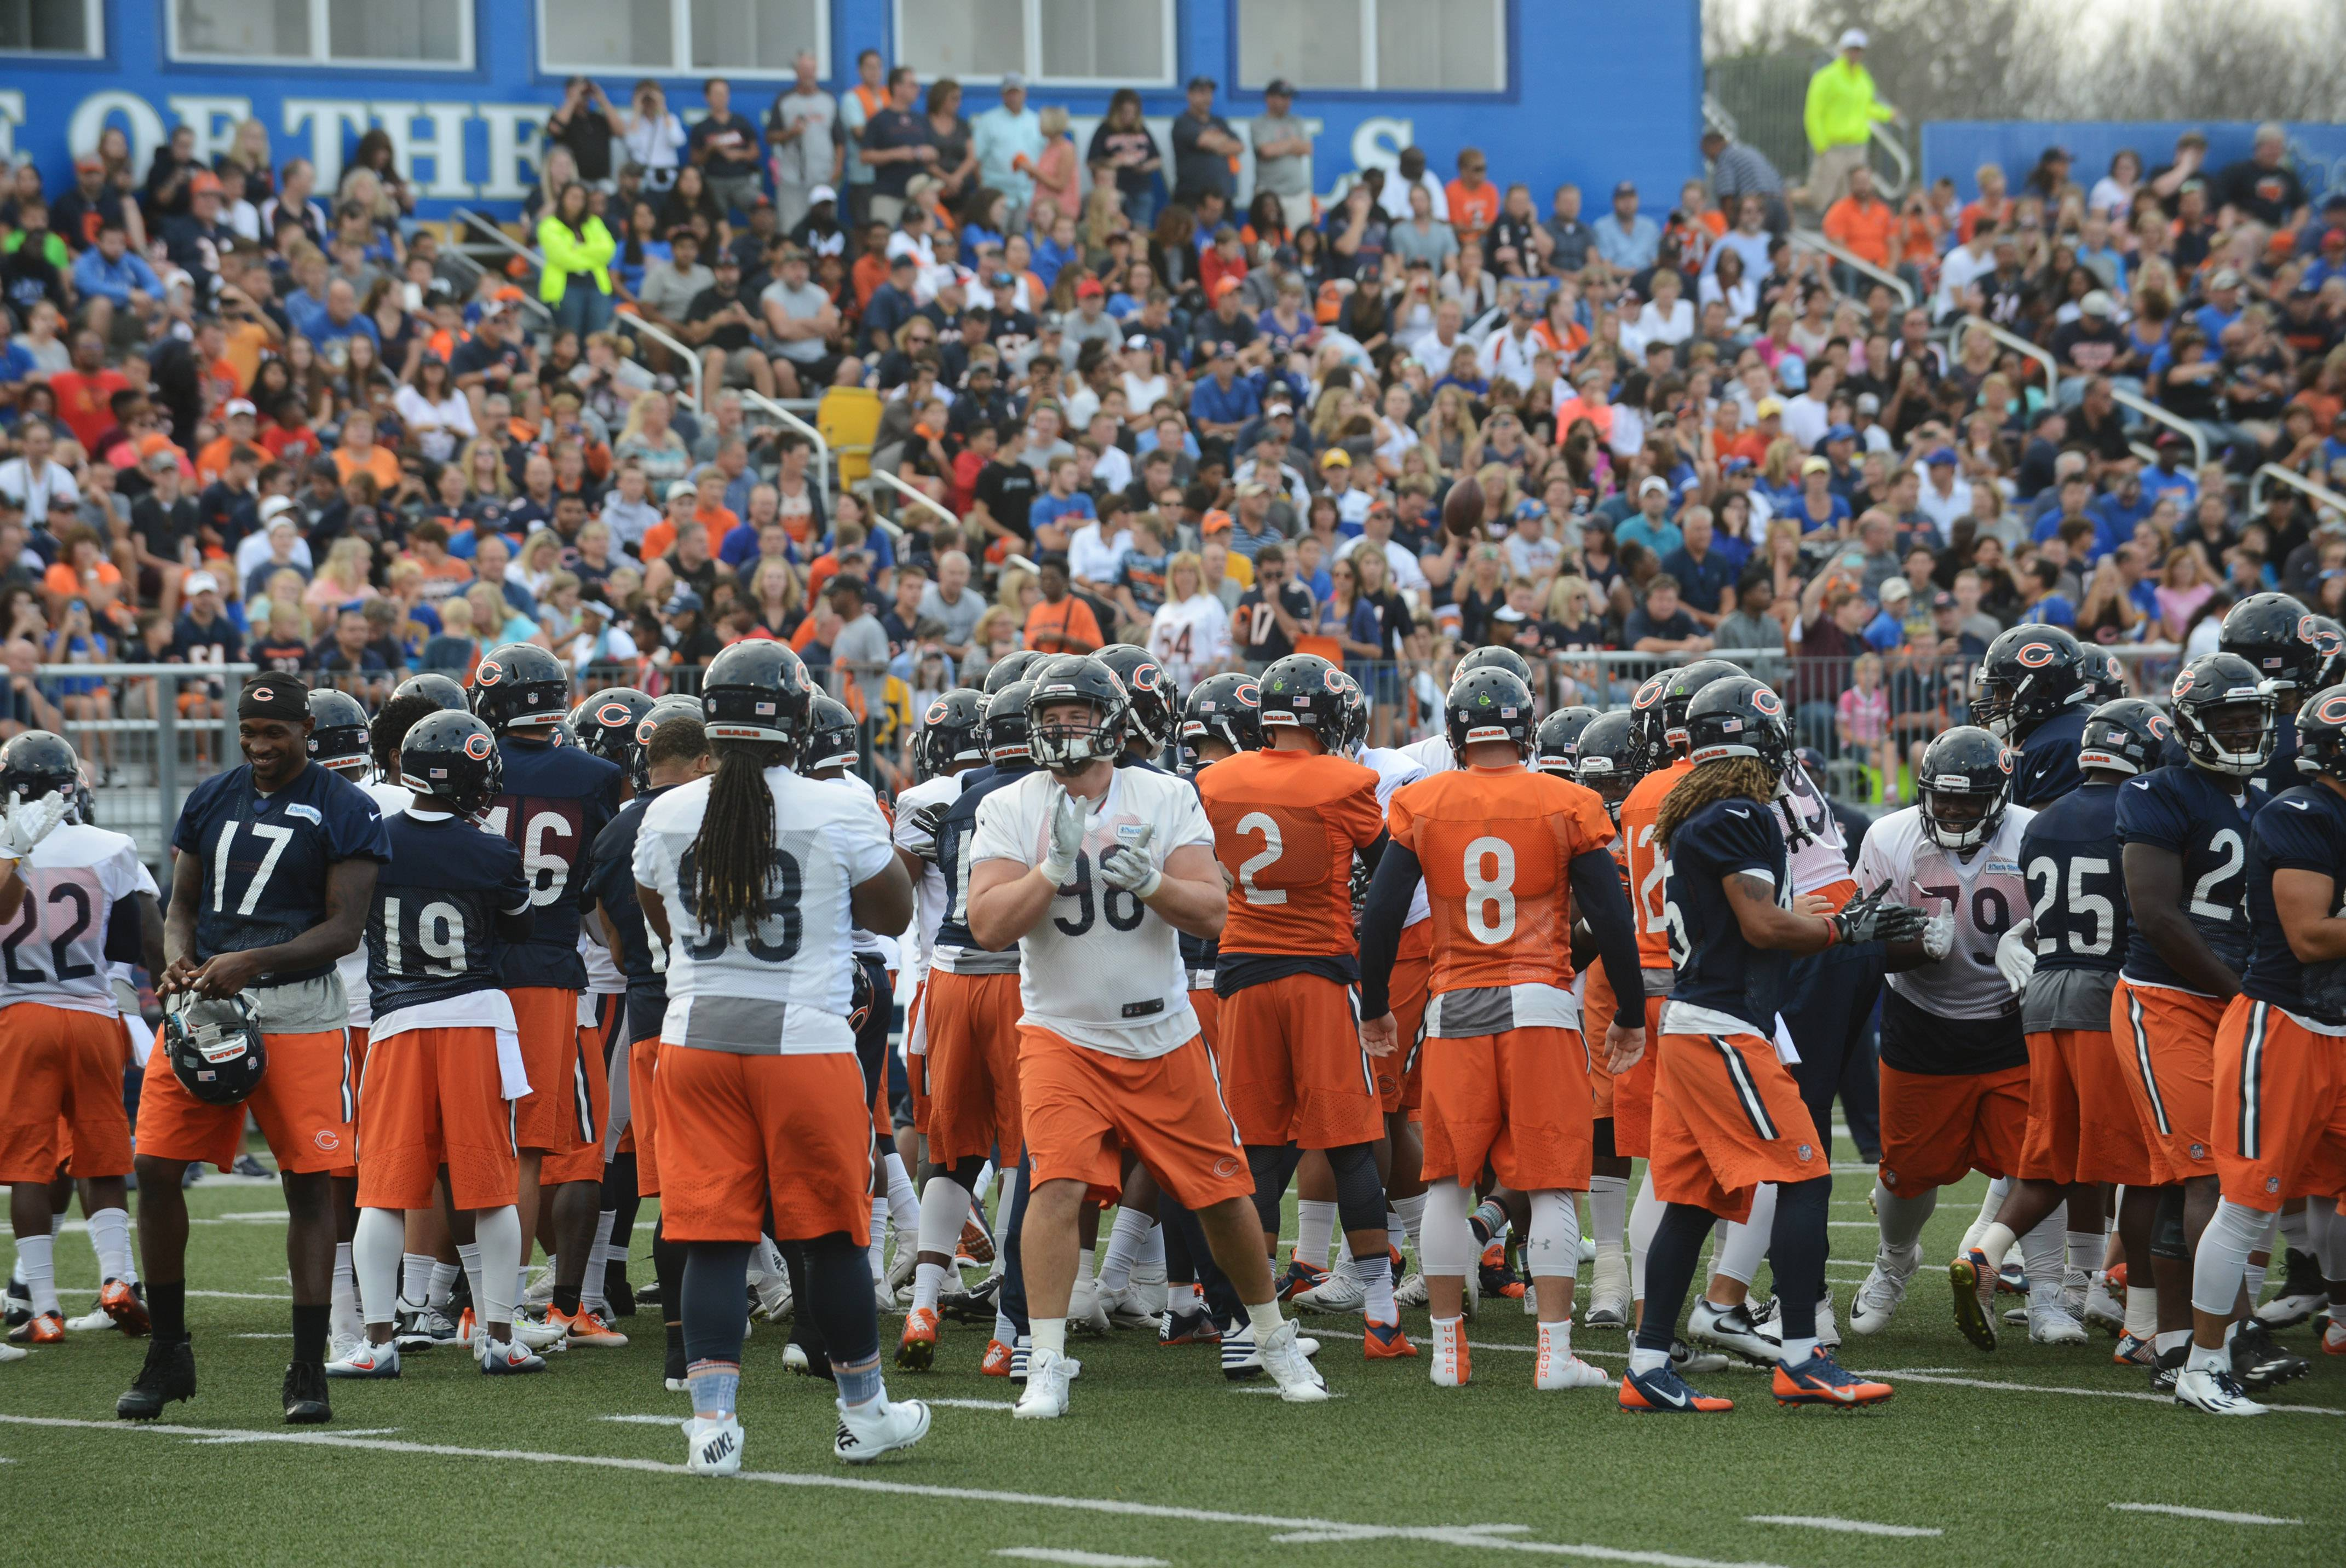 Chicago Bears to hold practice at Prospect High School